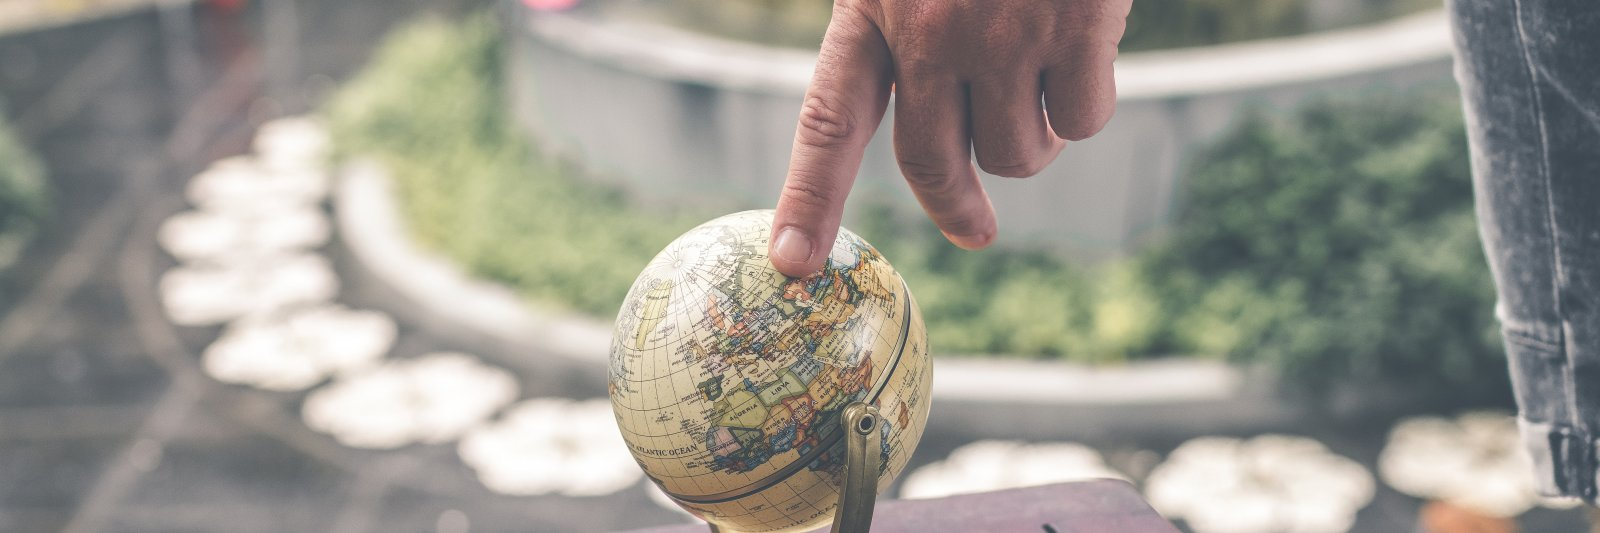 finger pointing to a location on a globe